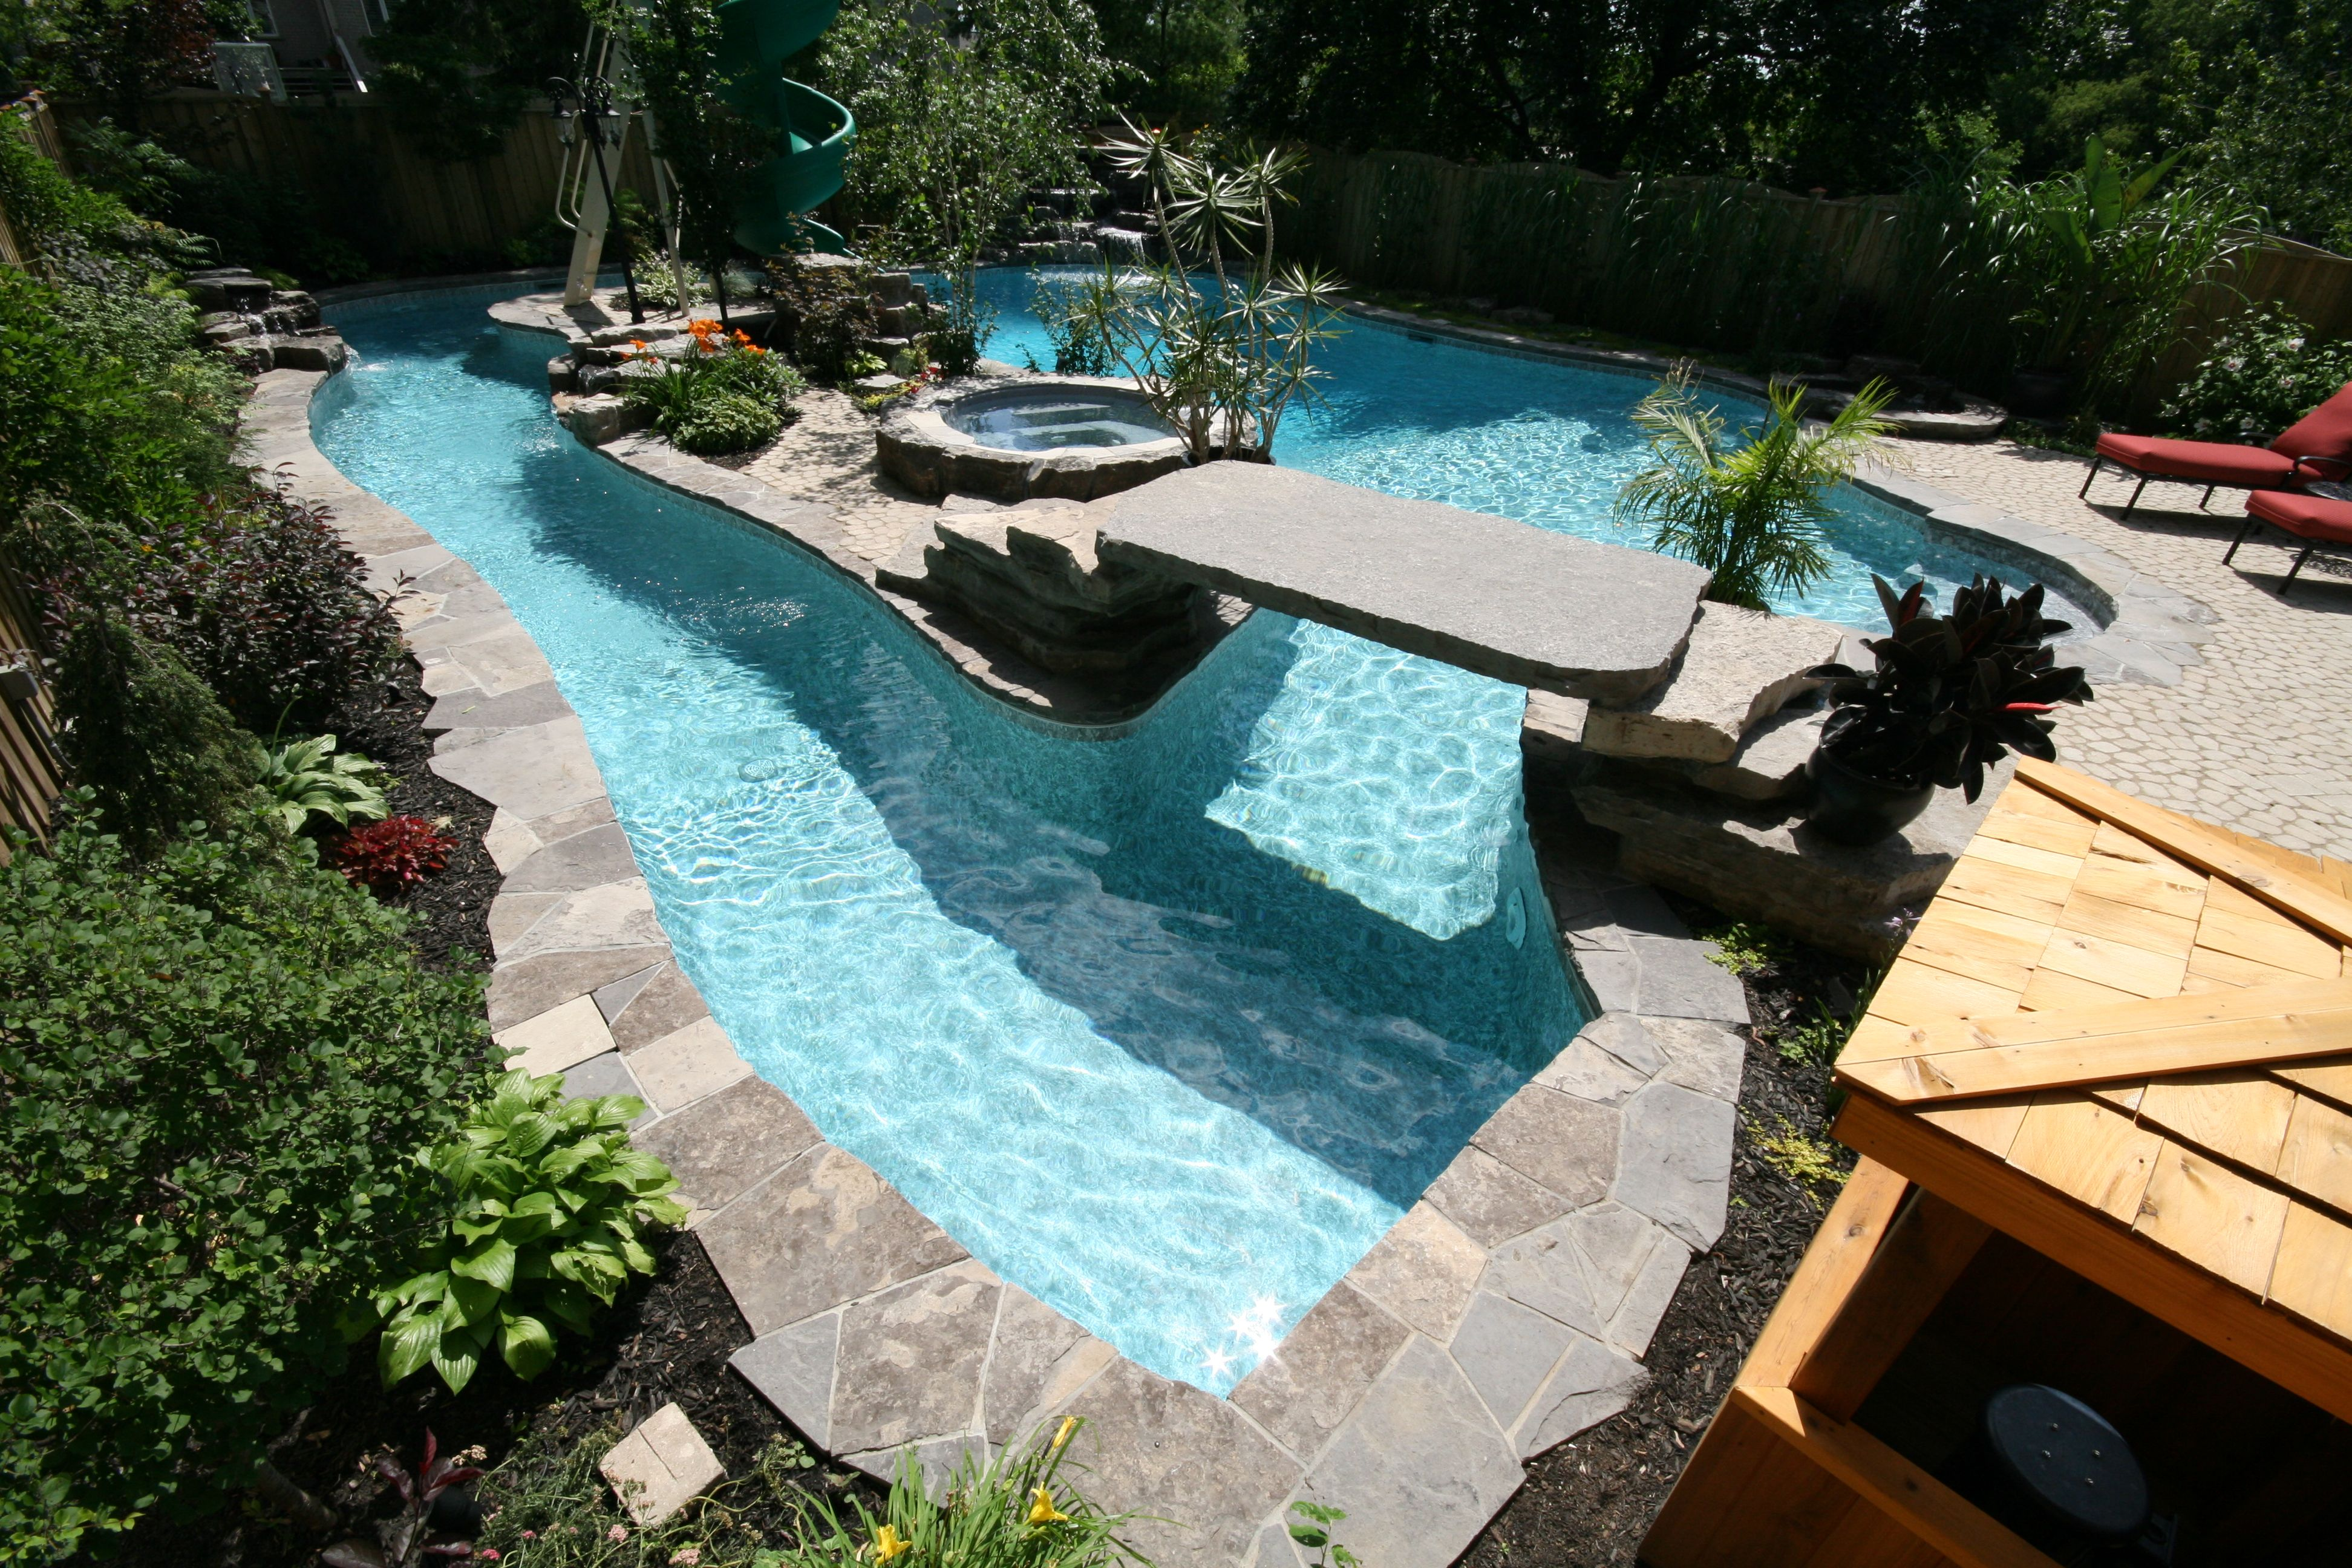 Beautiful Can You Imagine Having A Lazy River Pool In Your Own Backyard! AWESOME!